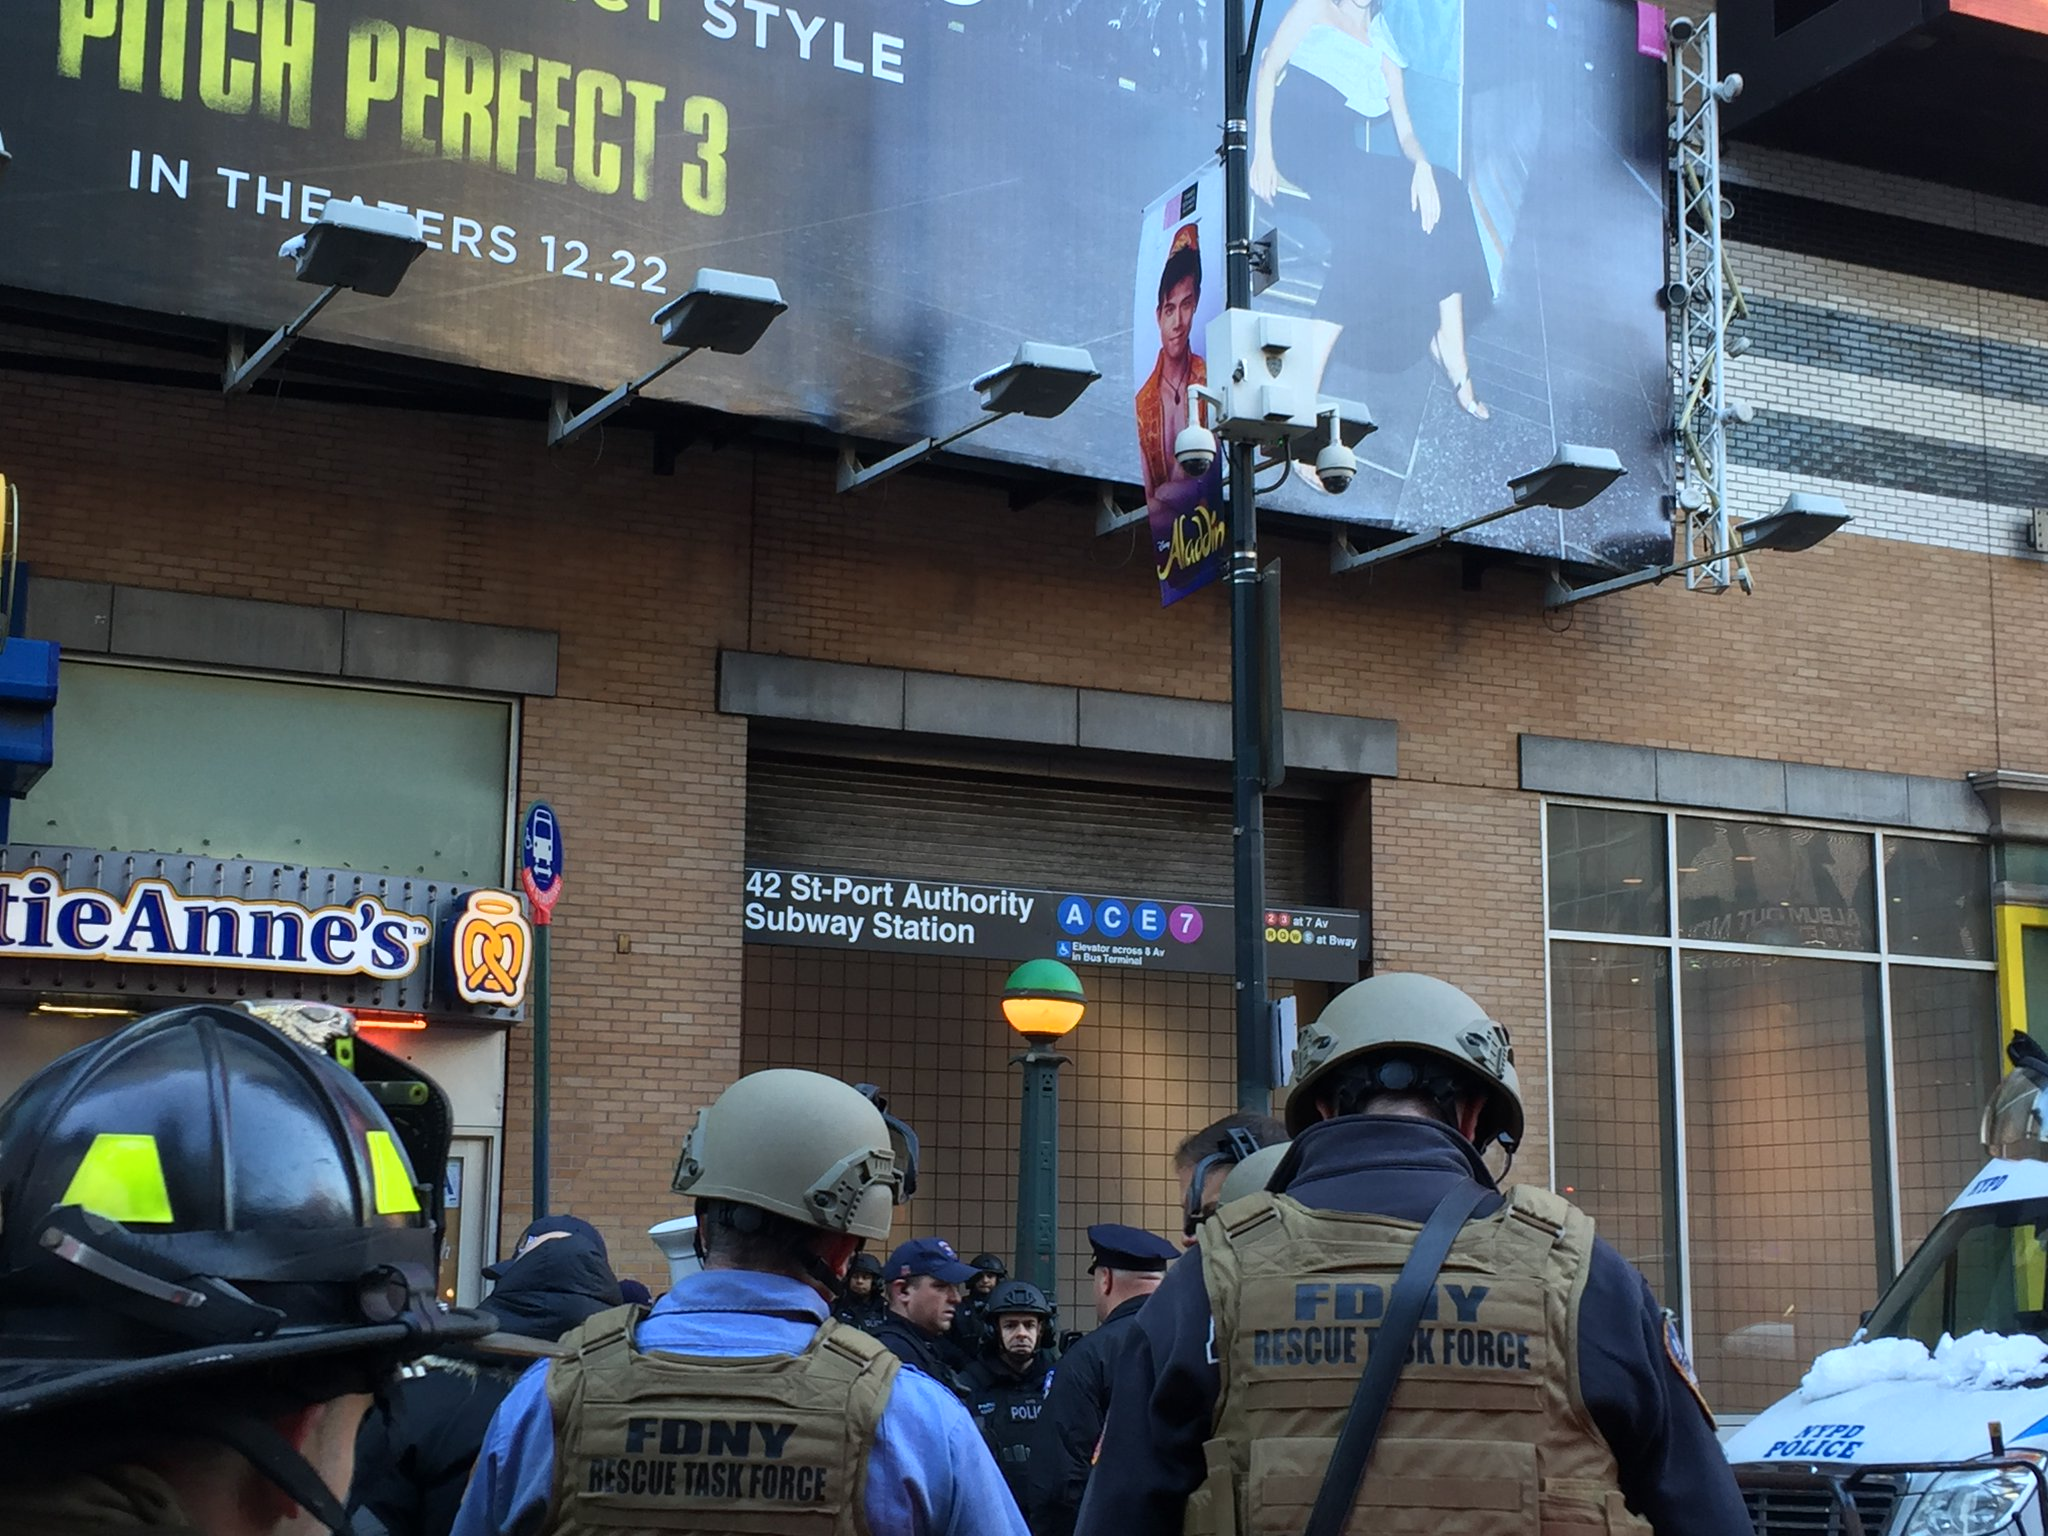 <div class='meta'><div class='origin-logo' data-origin='WABC'></div><span class='caption-text' data-credit='FDNY via Twitter'>Photos from the scene of a pipe bomb explosion at the Port Authority Bus Terminal in Manhattan, New York City.</span></div>